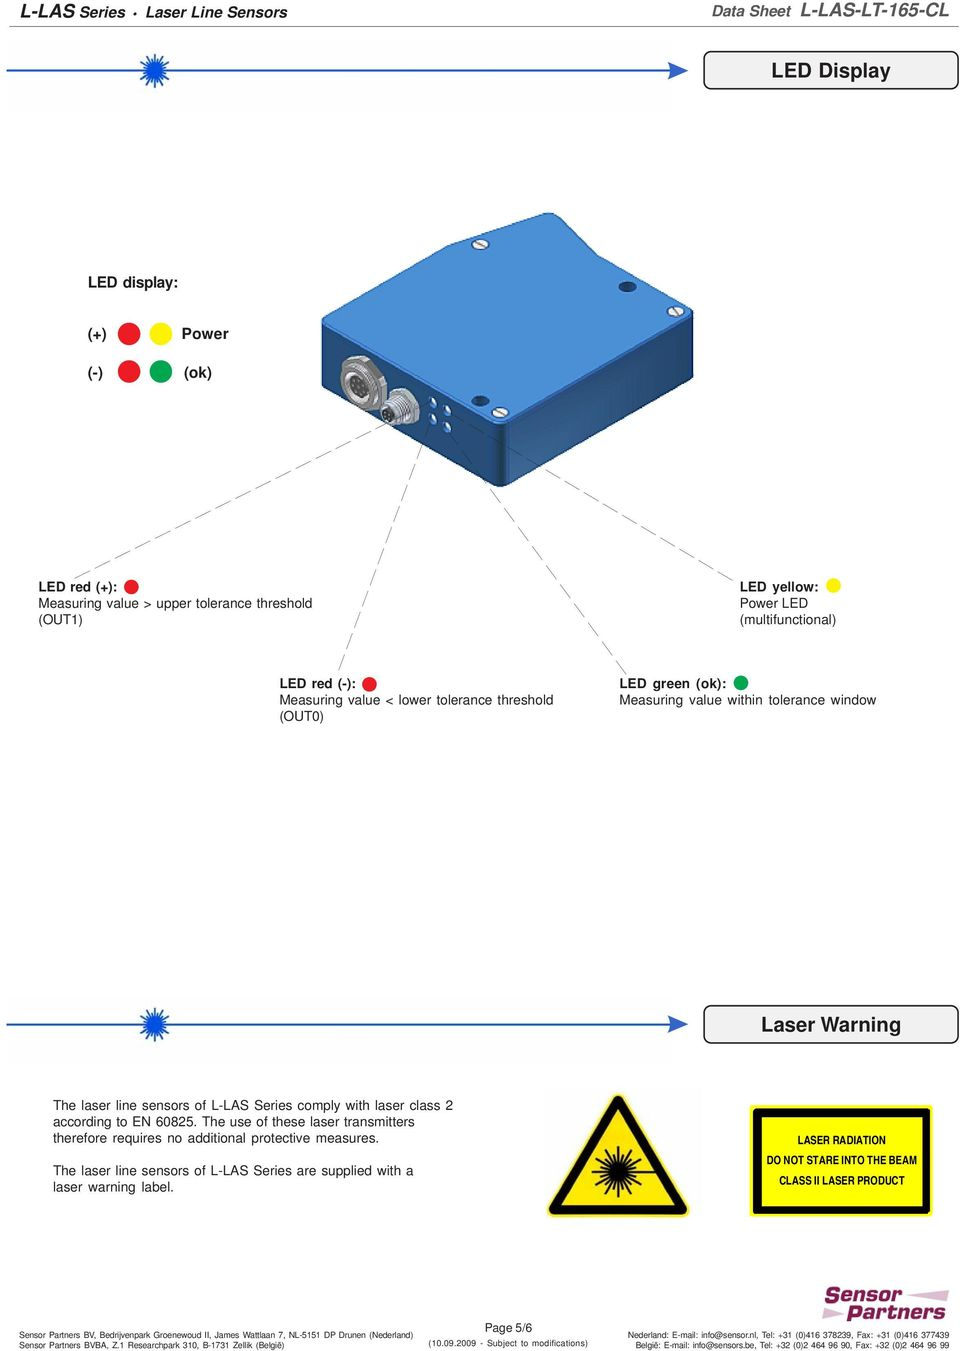 of L-LAS Series comply with laser class 2 according to EN 60825. The use of these laser transmitters therefore requires no additional protective measures.